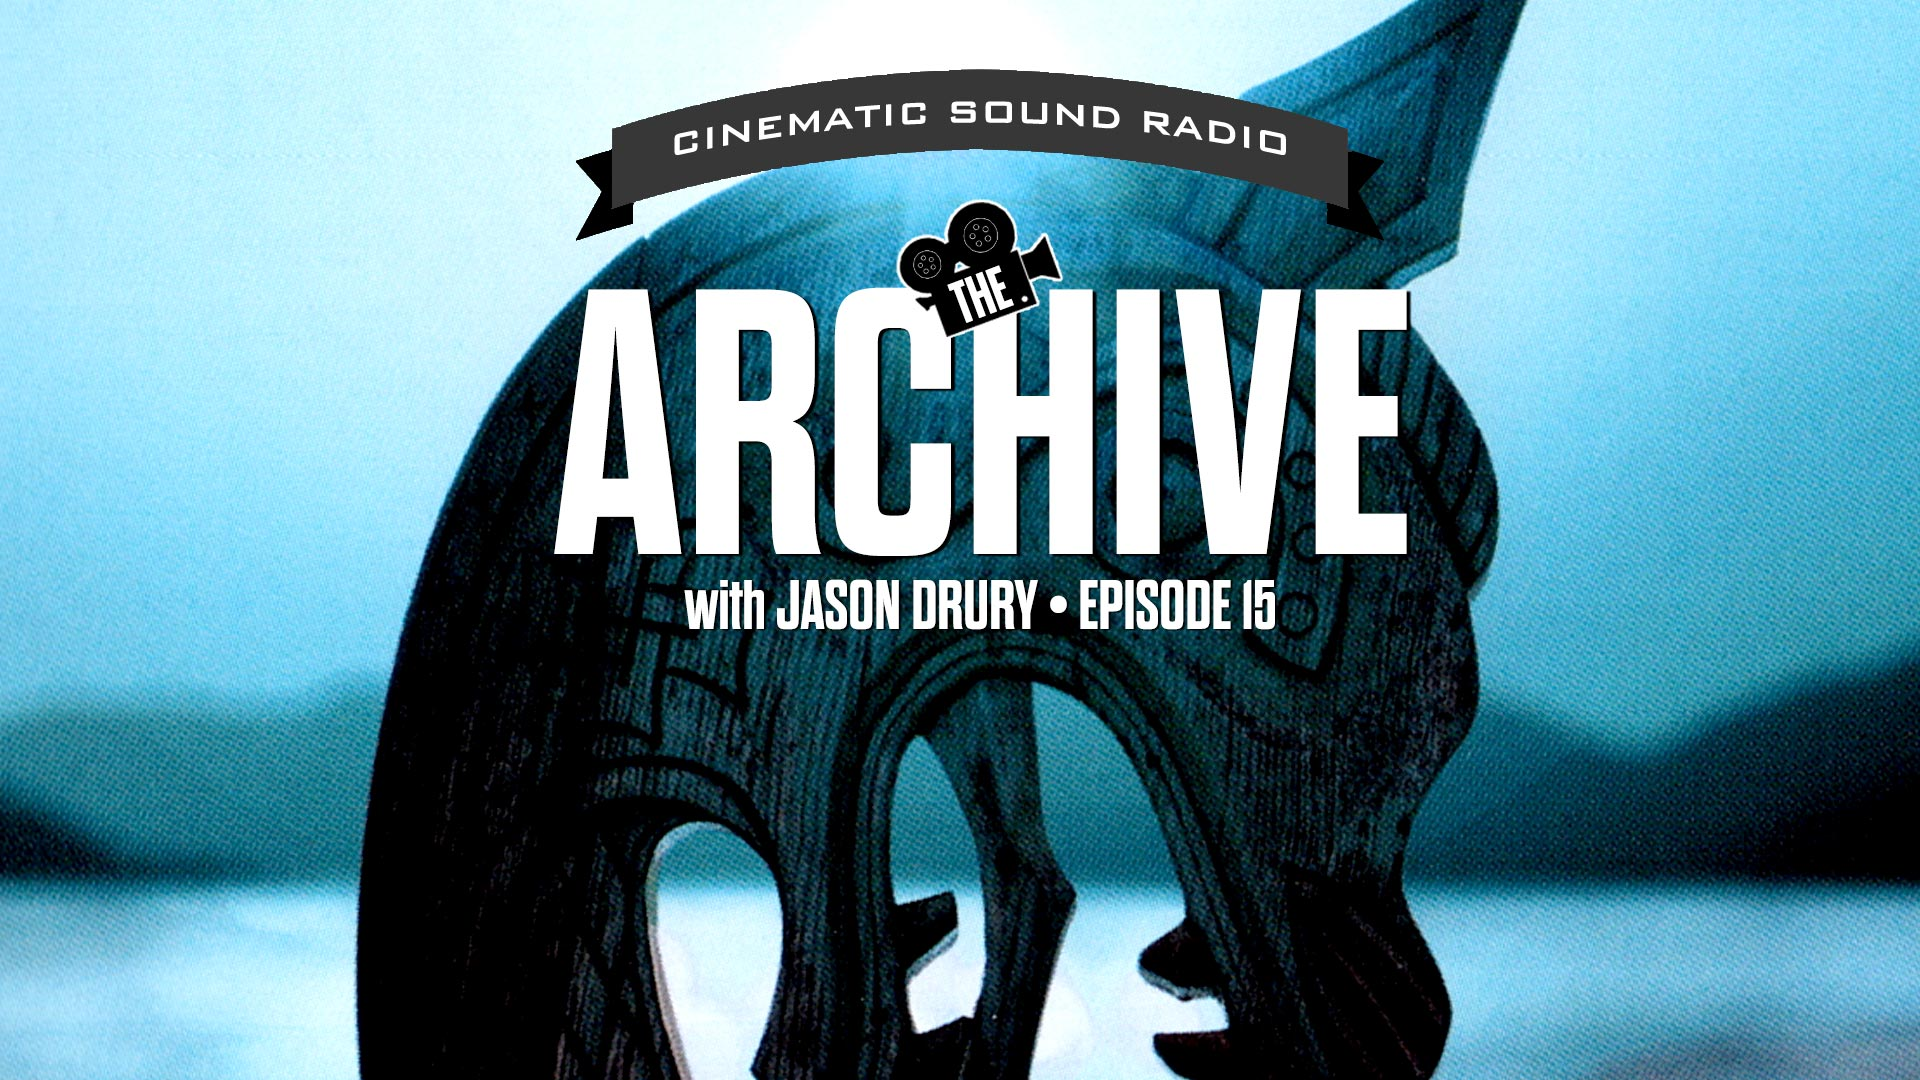 THE ARCHIVE WITH JASON DRURY: EPISODE FIFTEEN - PART 1